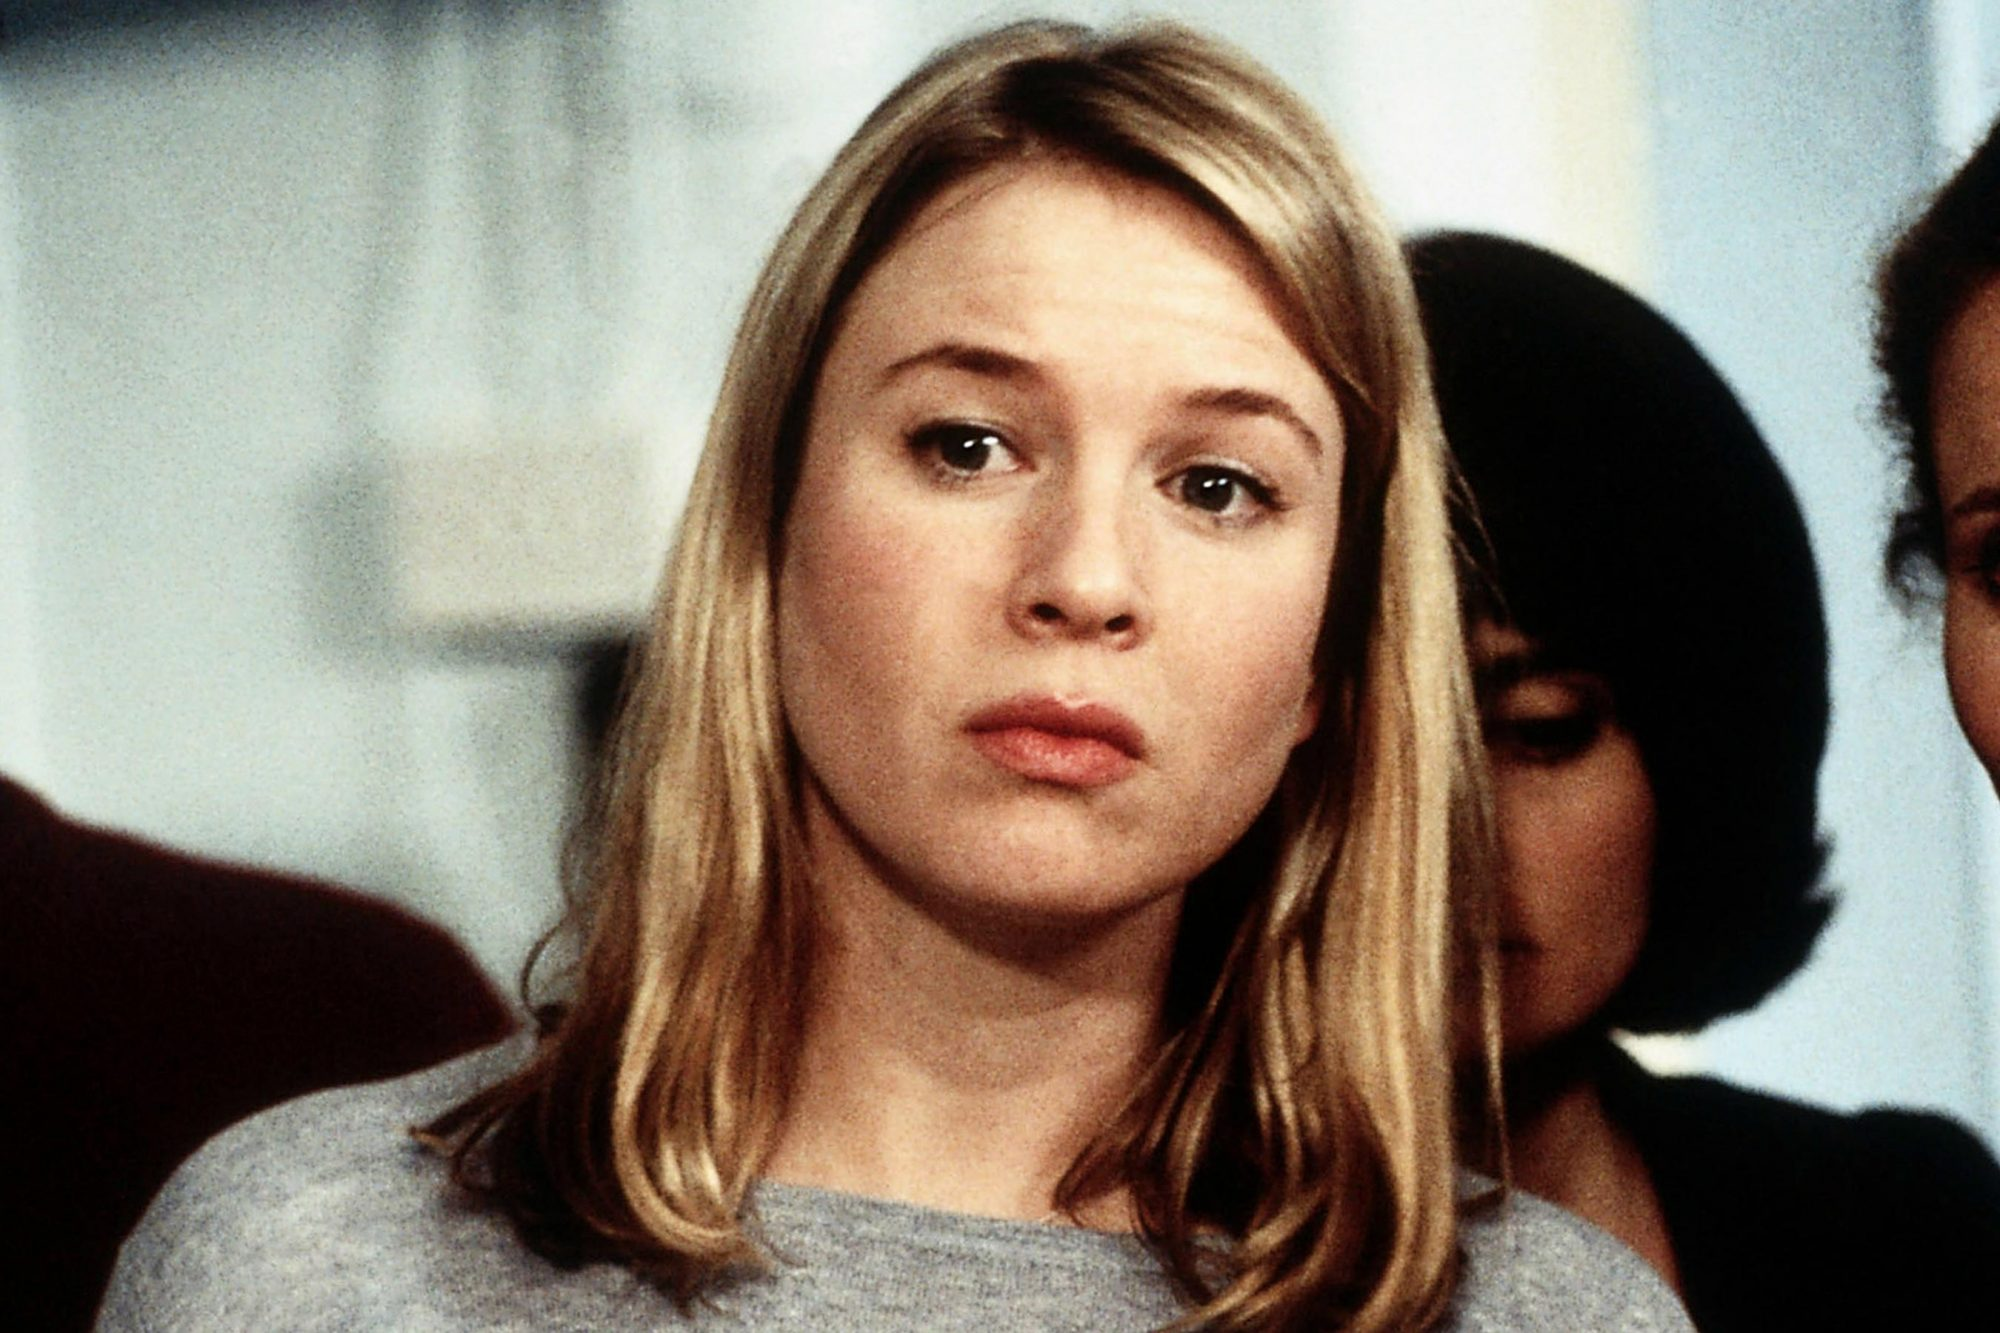 BRIDGET JONES'S DIARY, from left: Renee Zellweger, 2001, © Miramax/courtesy Everett Collection